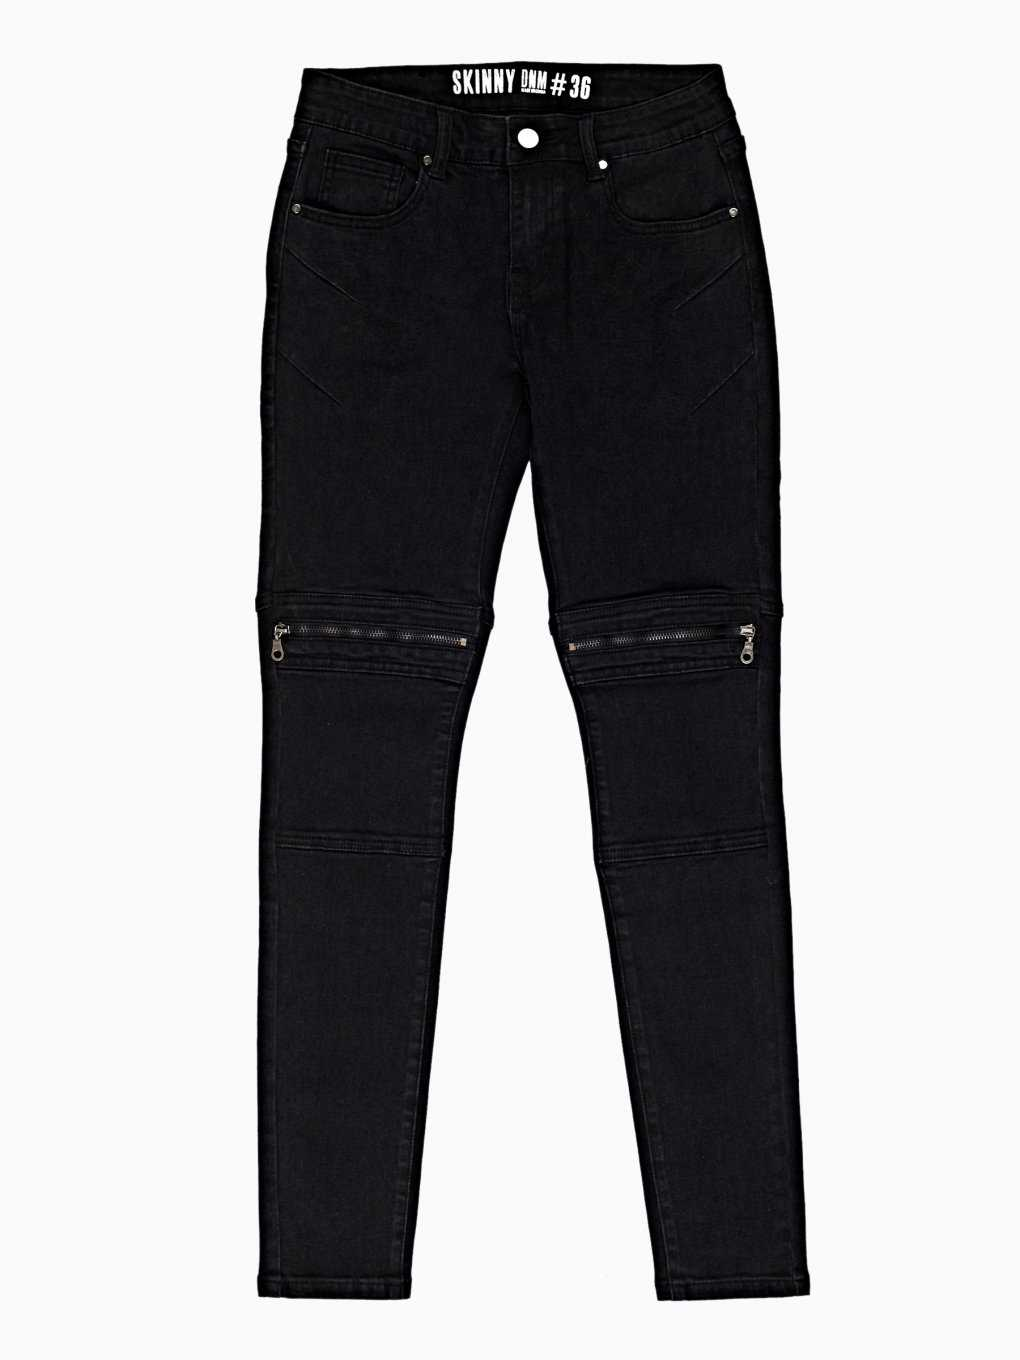 BIKER SKINNY JEANS IN BLACK WASH